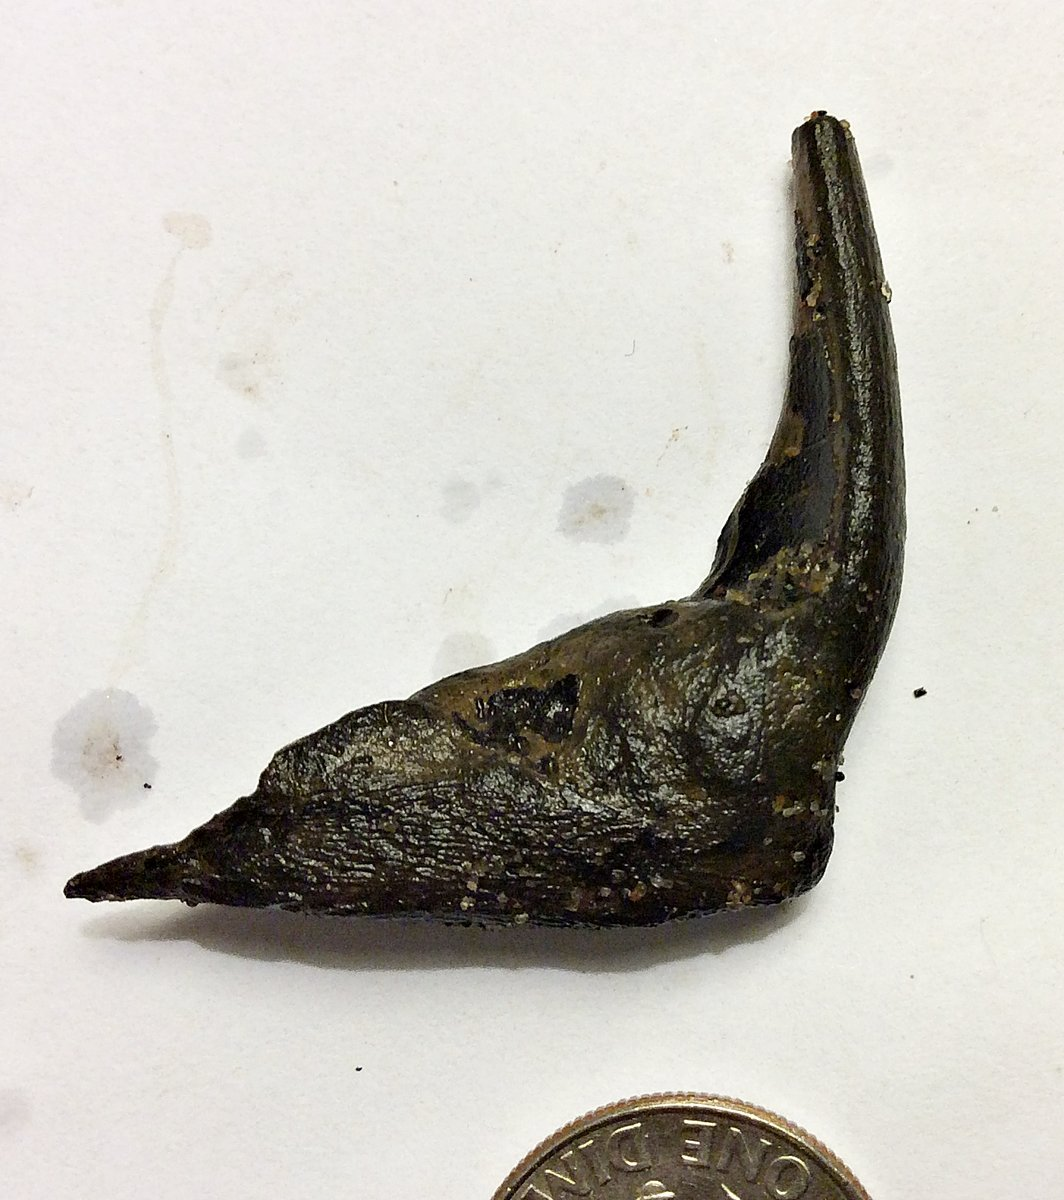 Enchodus Fang and Jaw Fragment from Ramanessin Brrok, N.J.